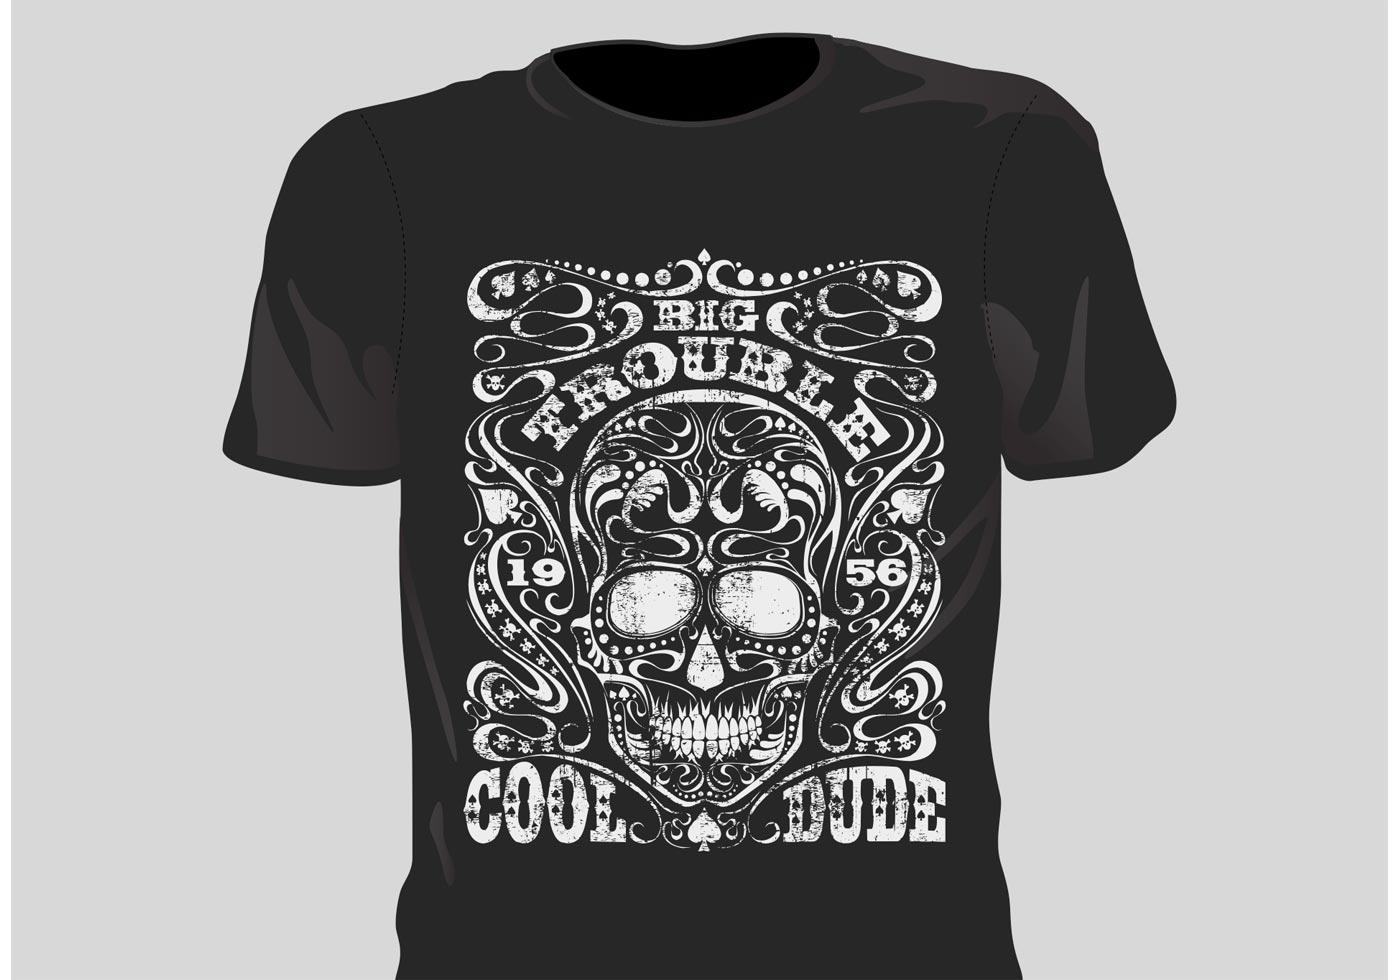 Stand out designs t shirts : Fabulous design t shirt ideas to try out in carey